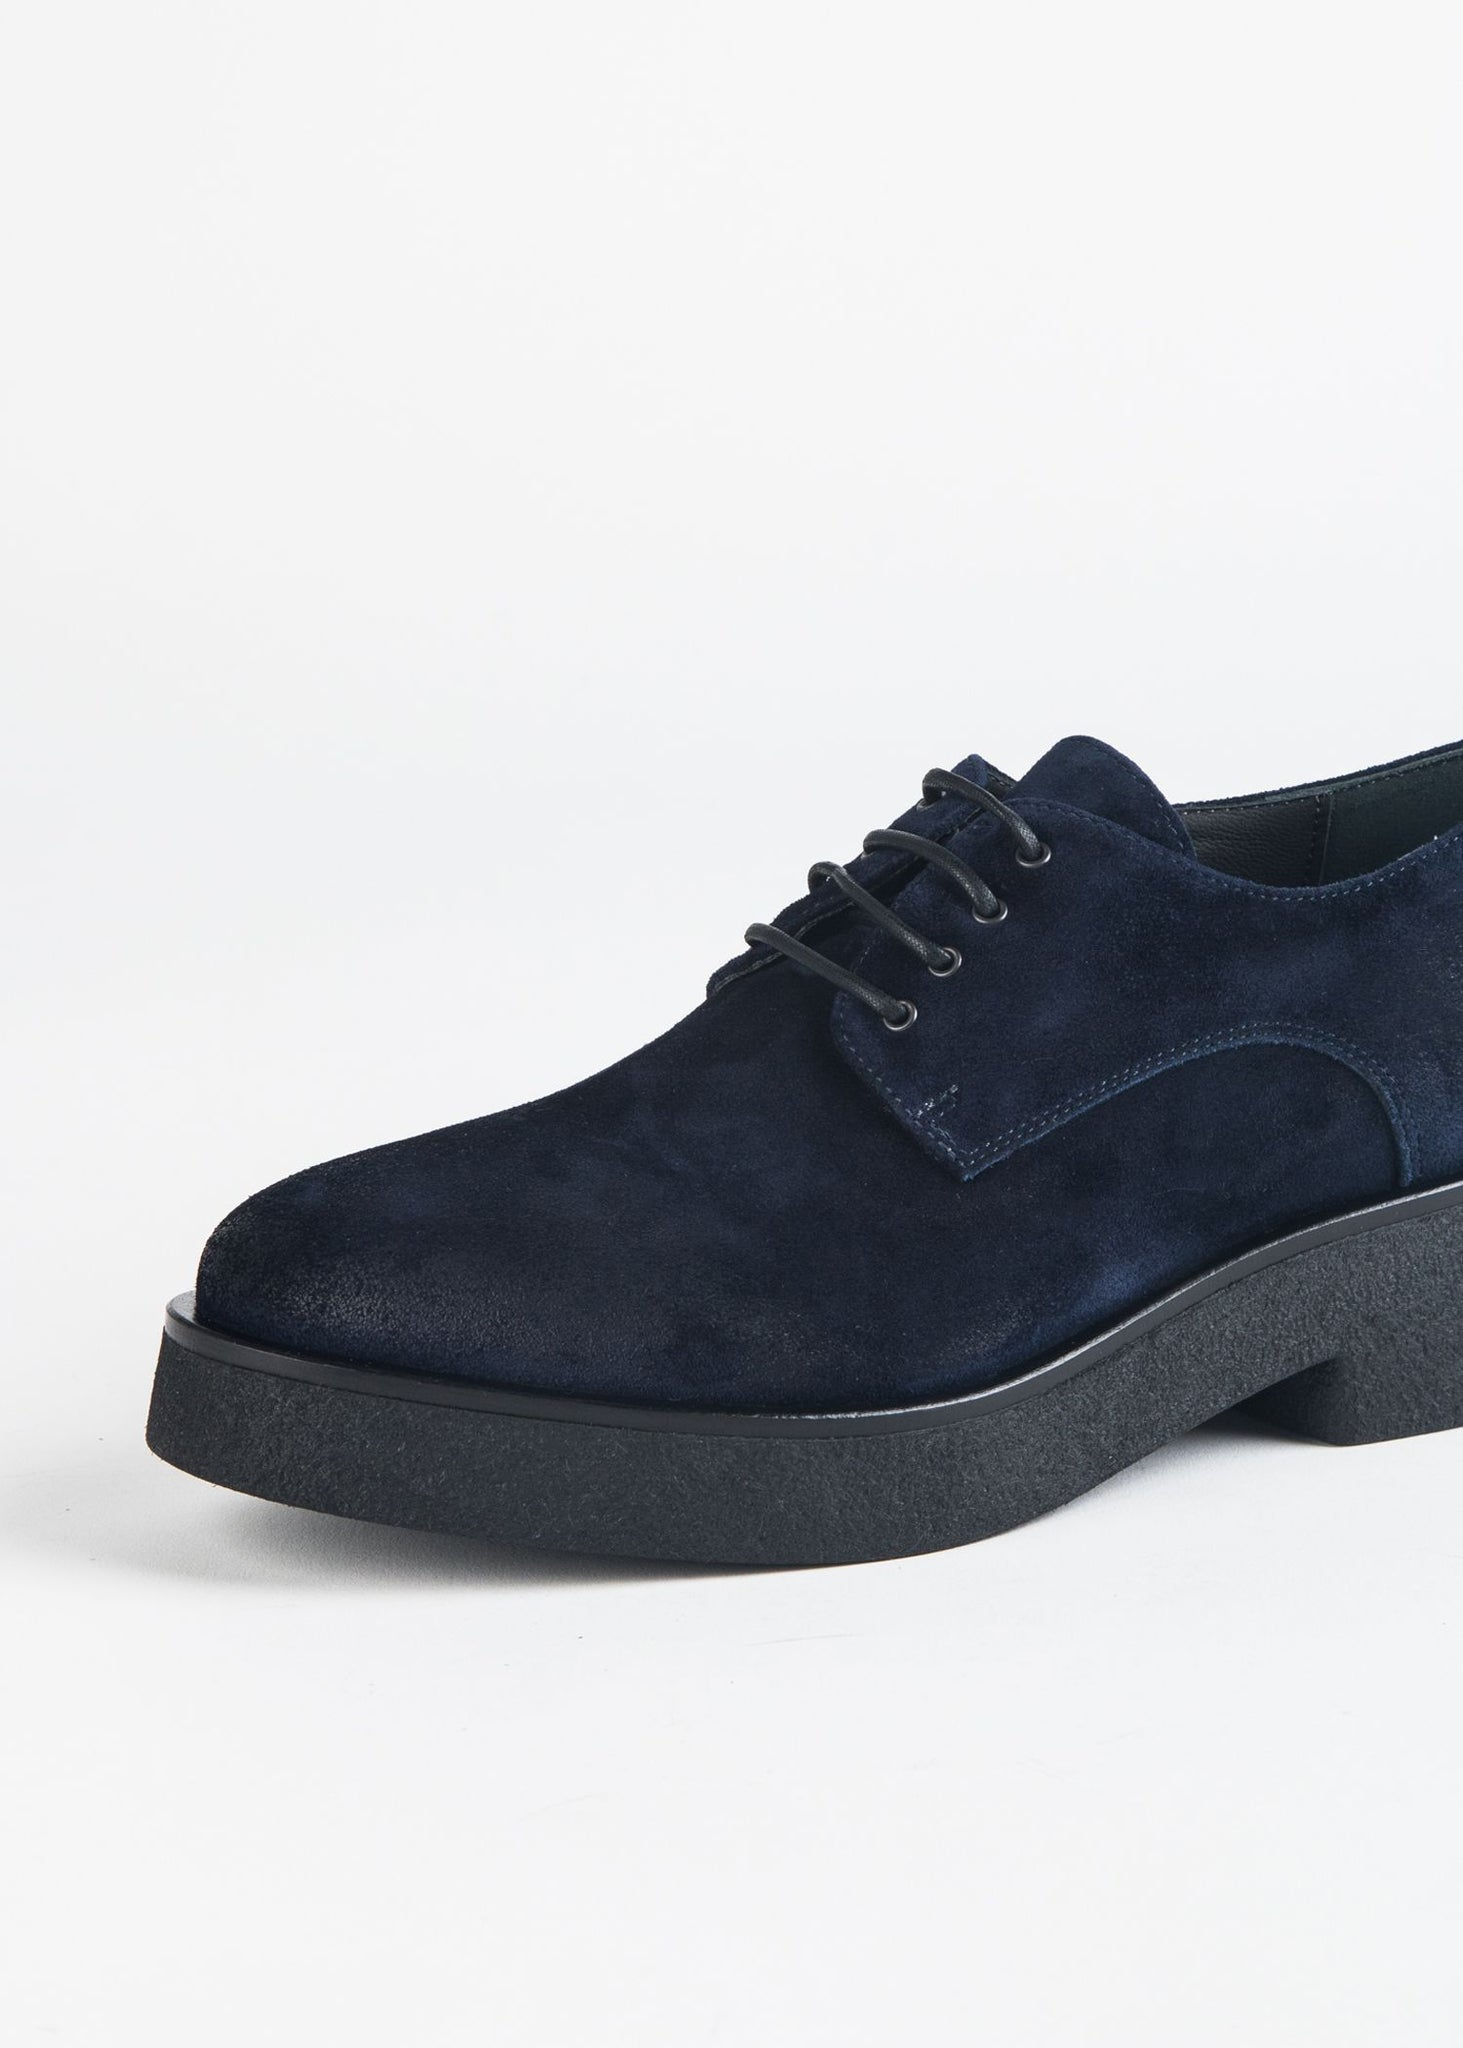 CREPE SOLE OXFORD